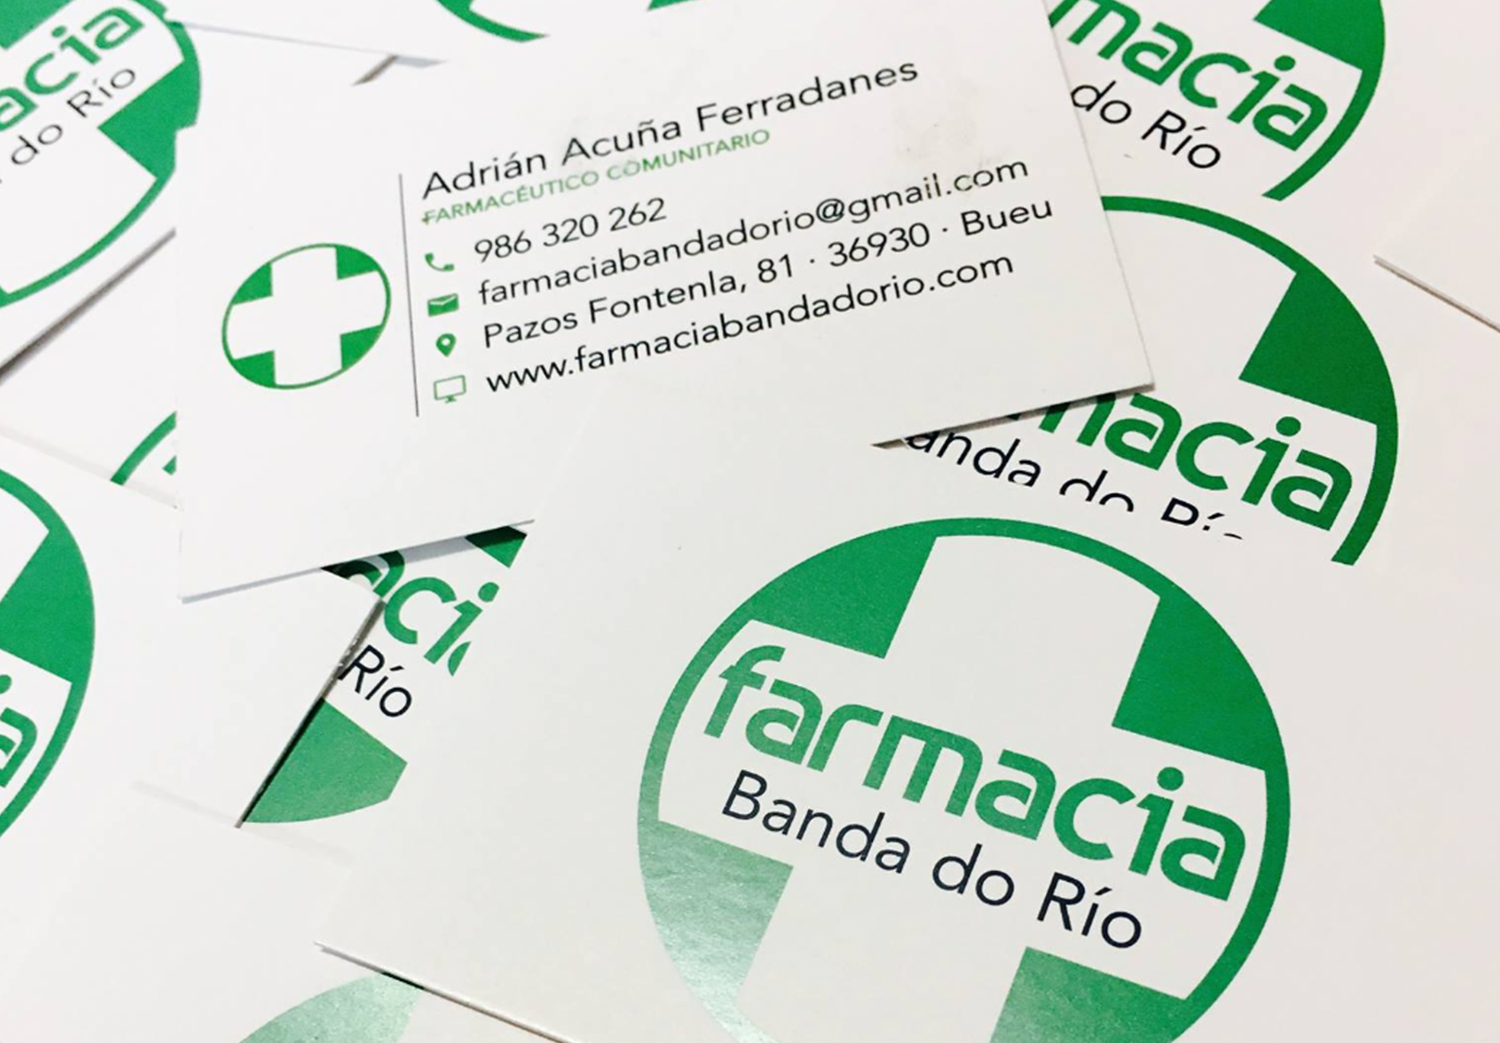 Farmacia_banda_do_rio_Brand_4